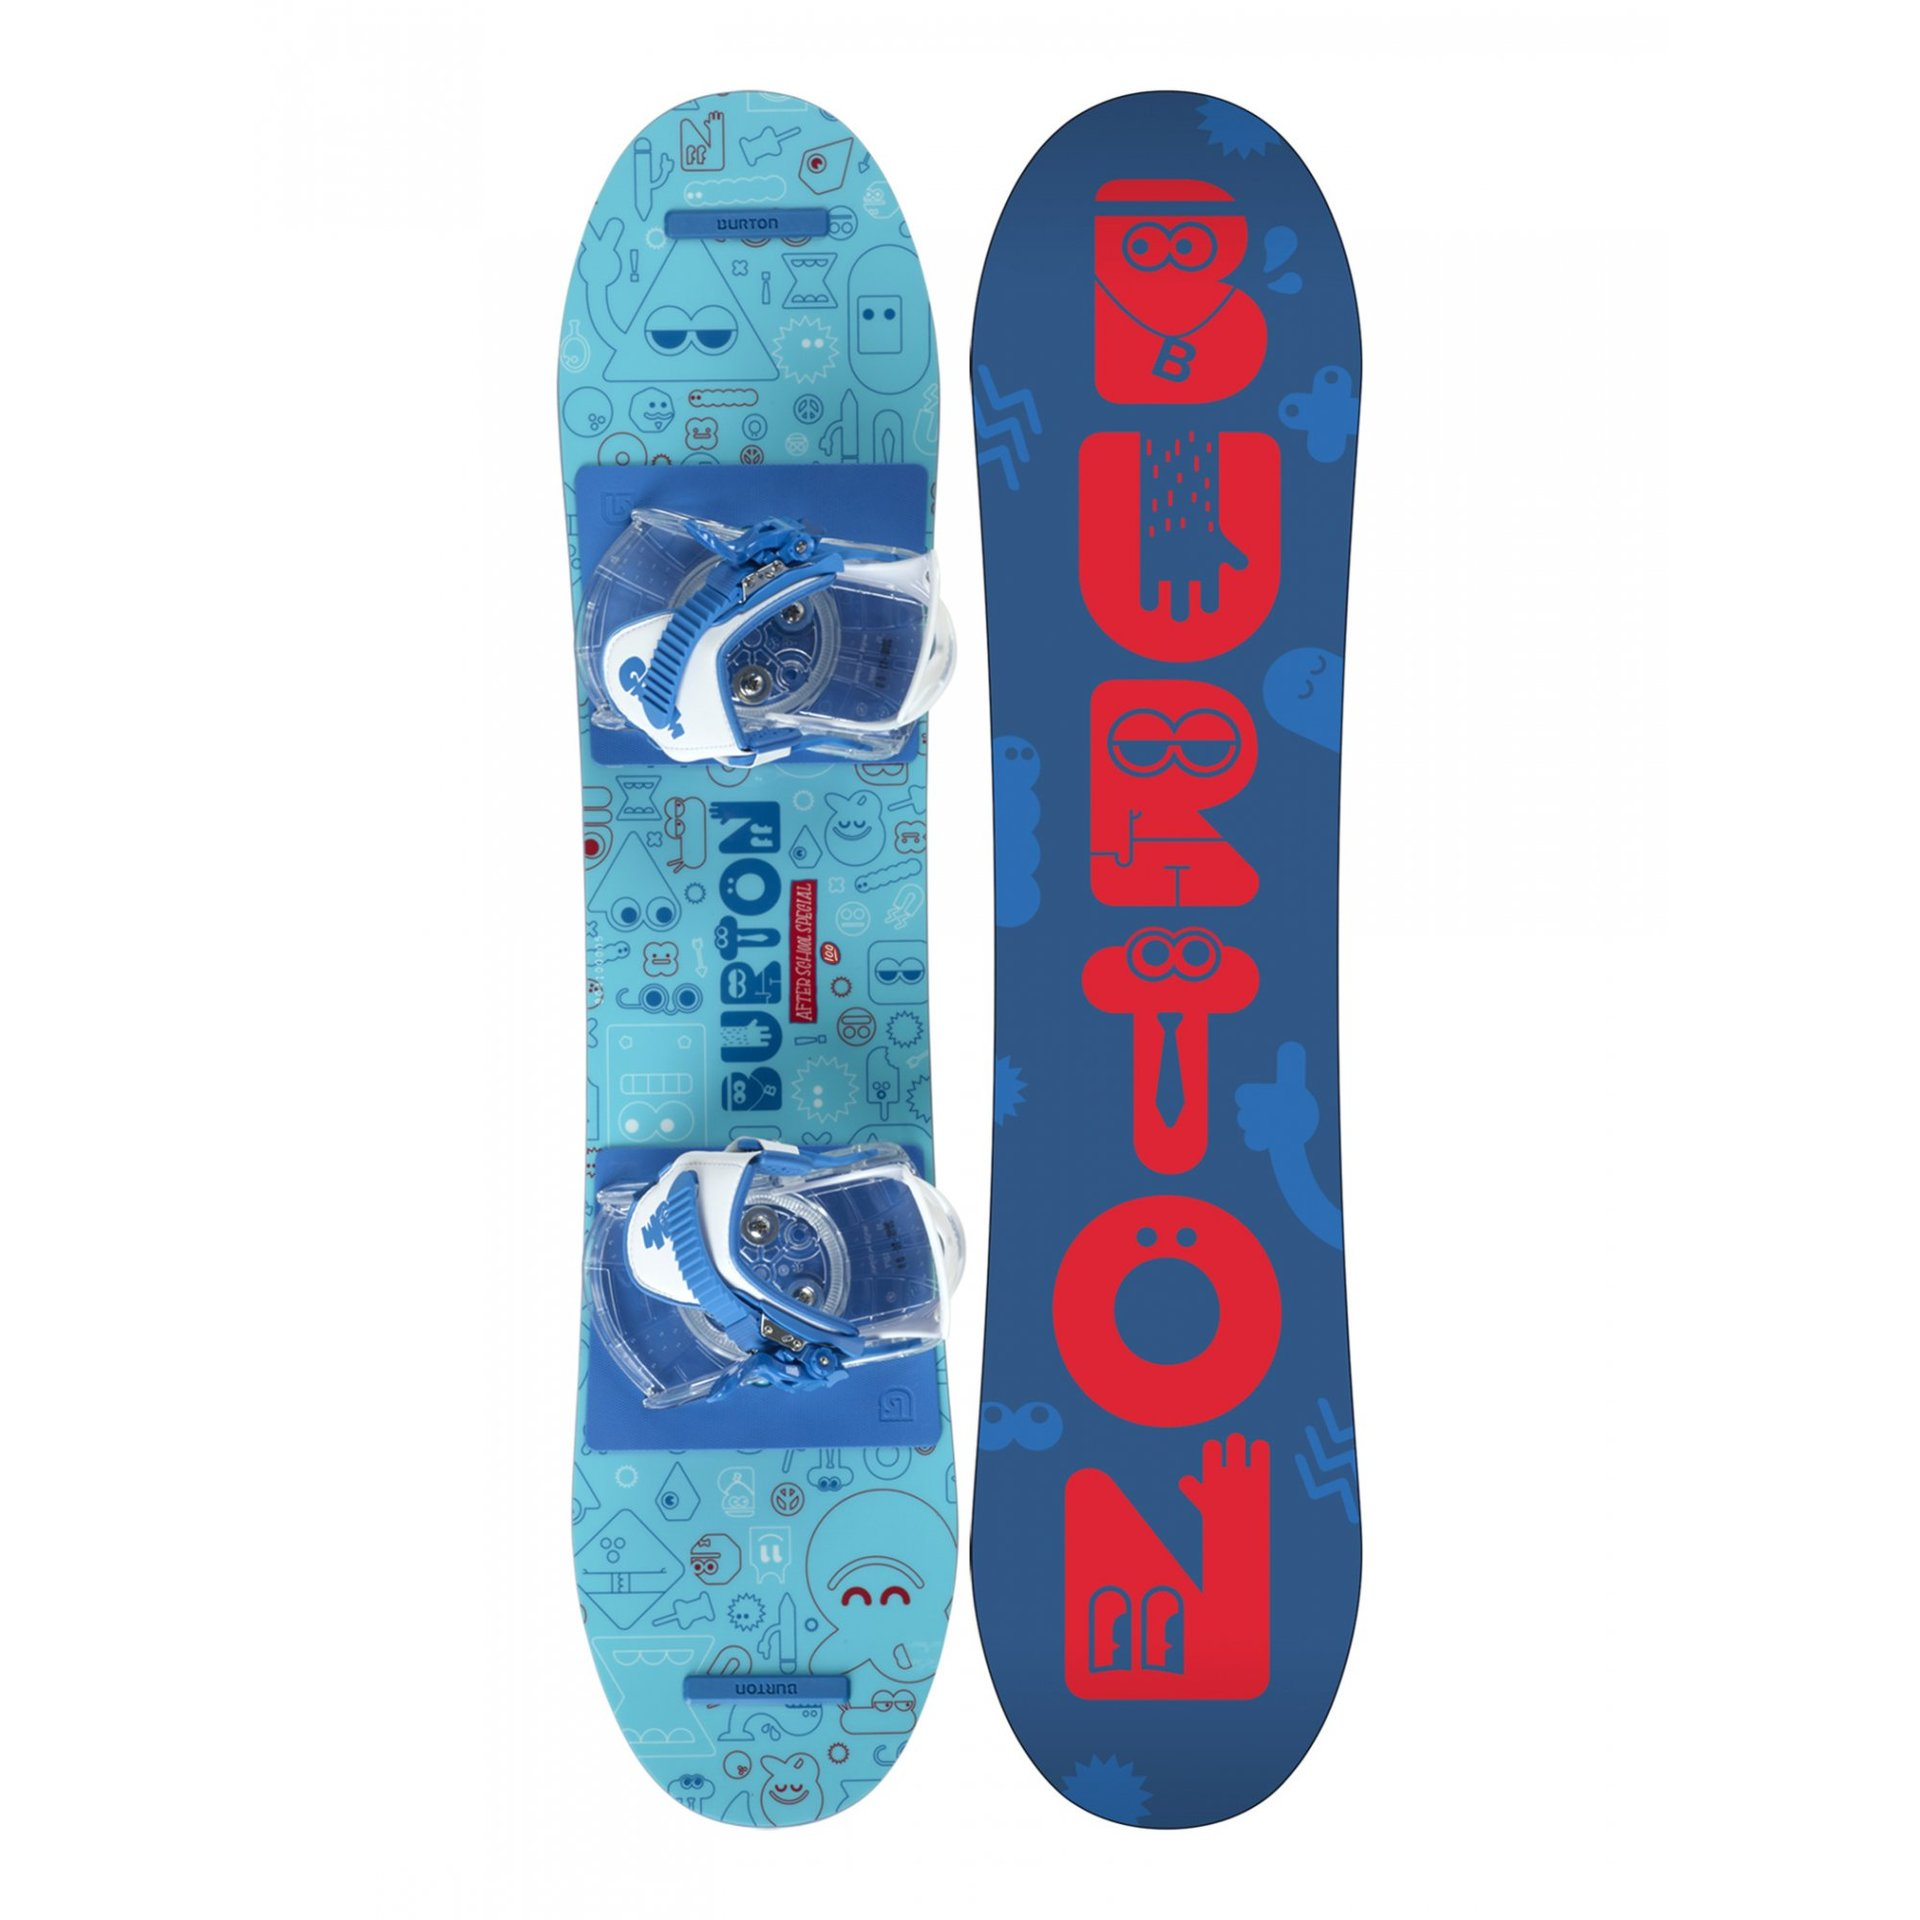 DESKA SNOWBOARDOWA BURTON AFTER SCHOOL SPECIAL 107311